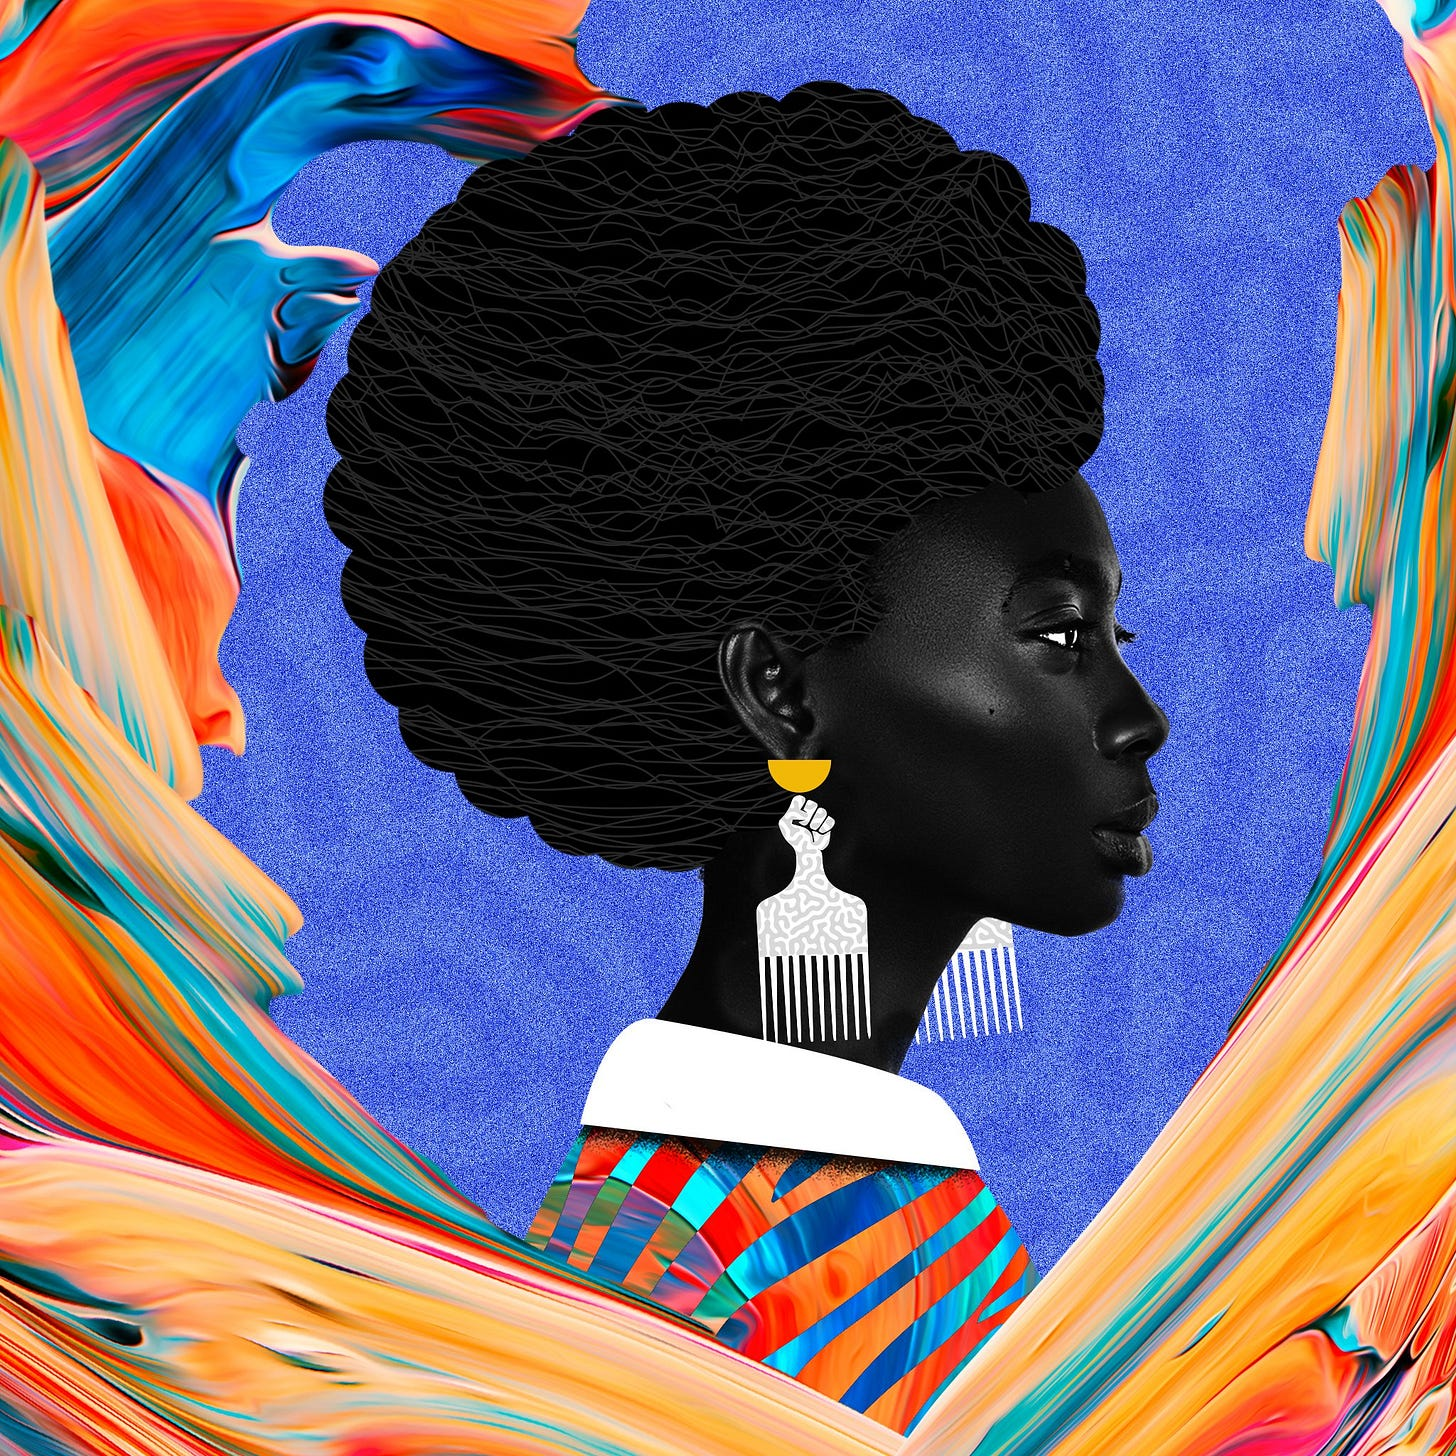 Photo of Black woman with afro and unity fist pick comb earrings against colorful background.